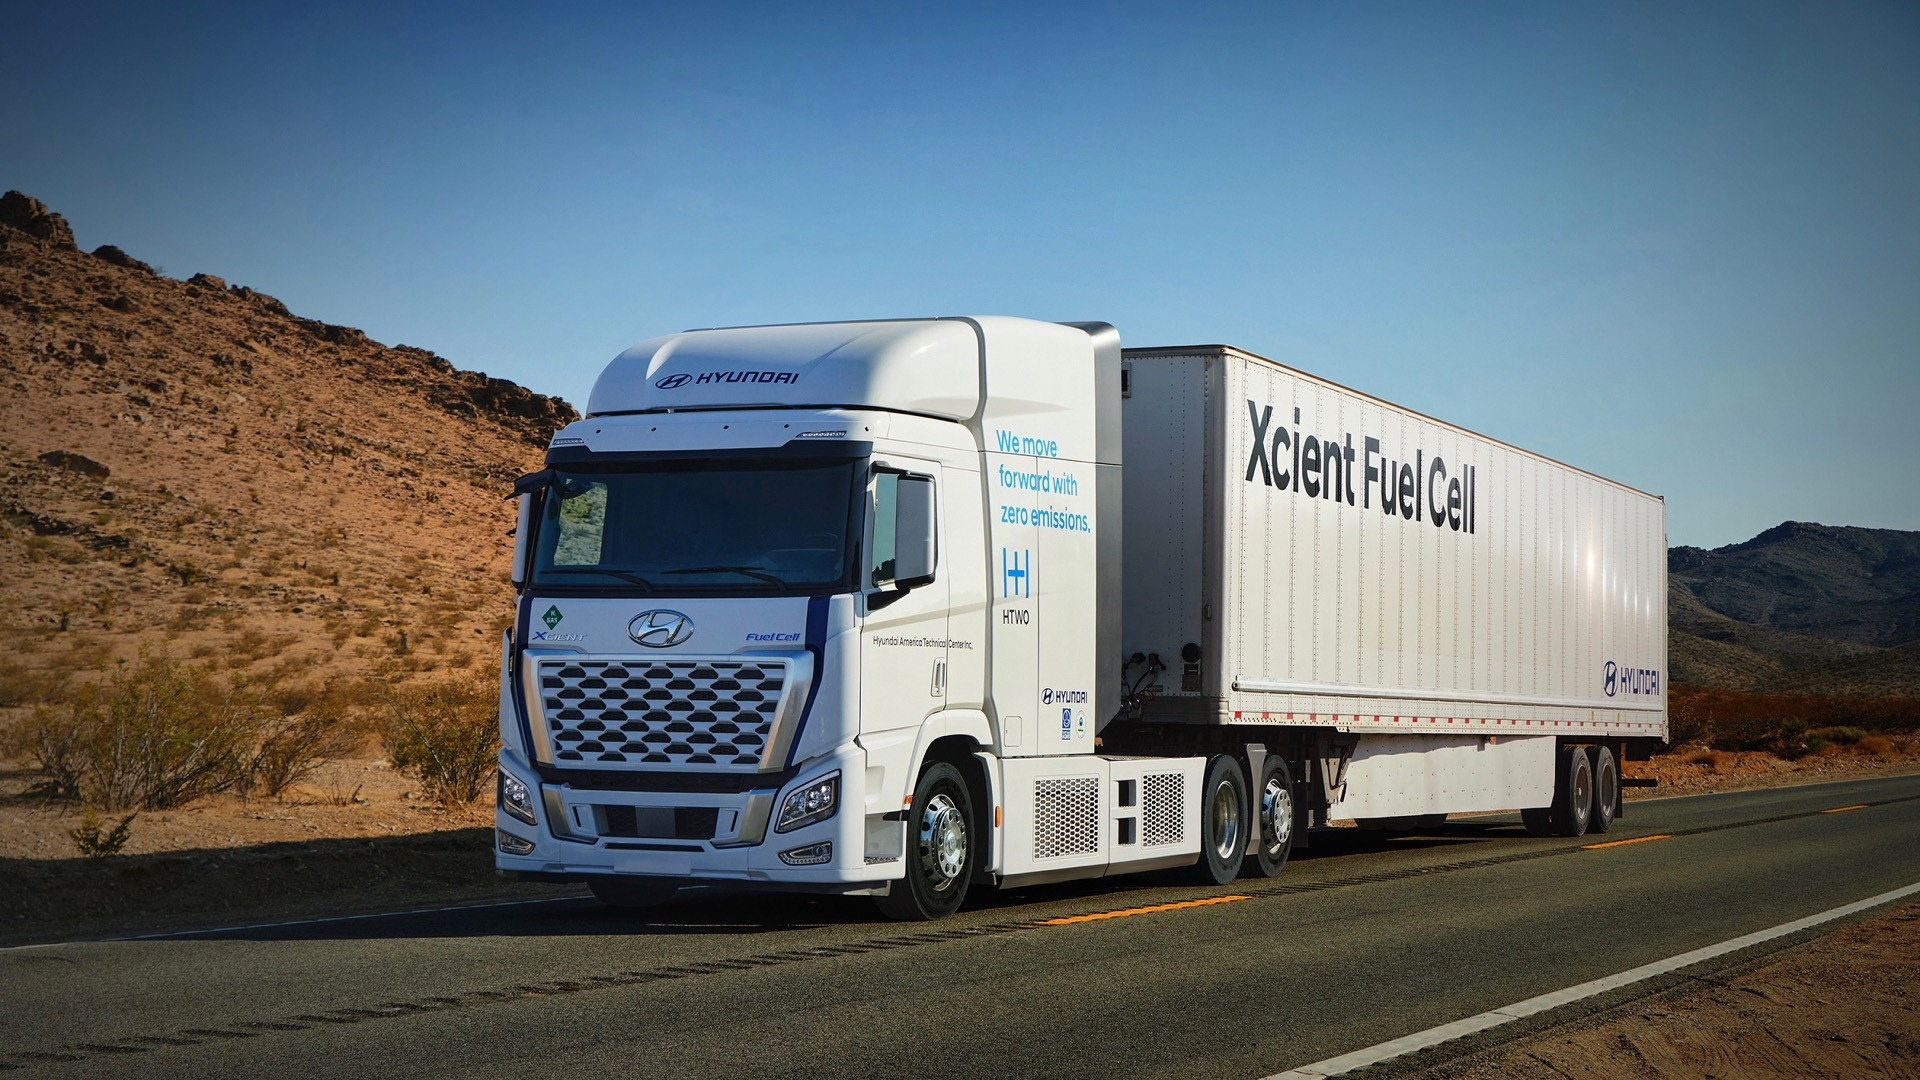 Hyundai Xcient Fuel Cell semi truck to be used in California tests